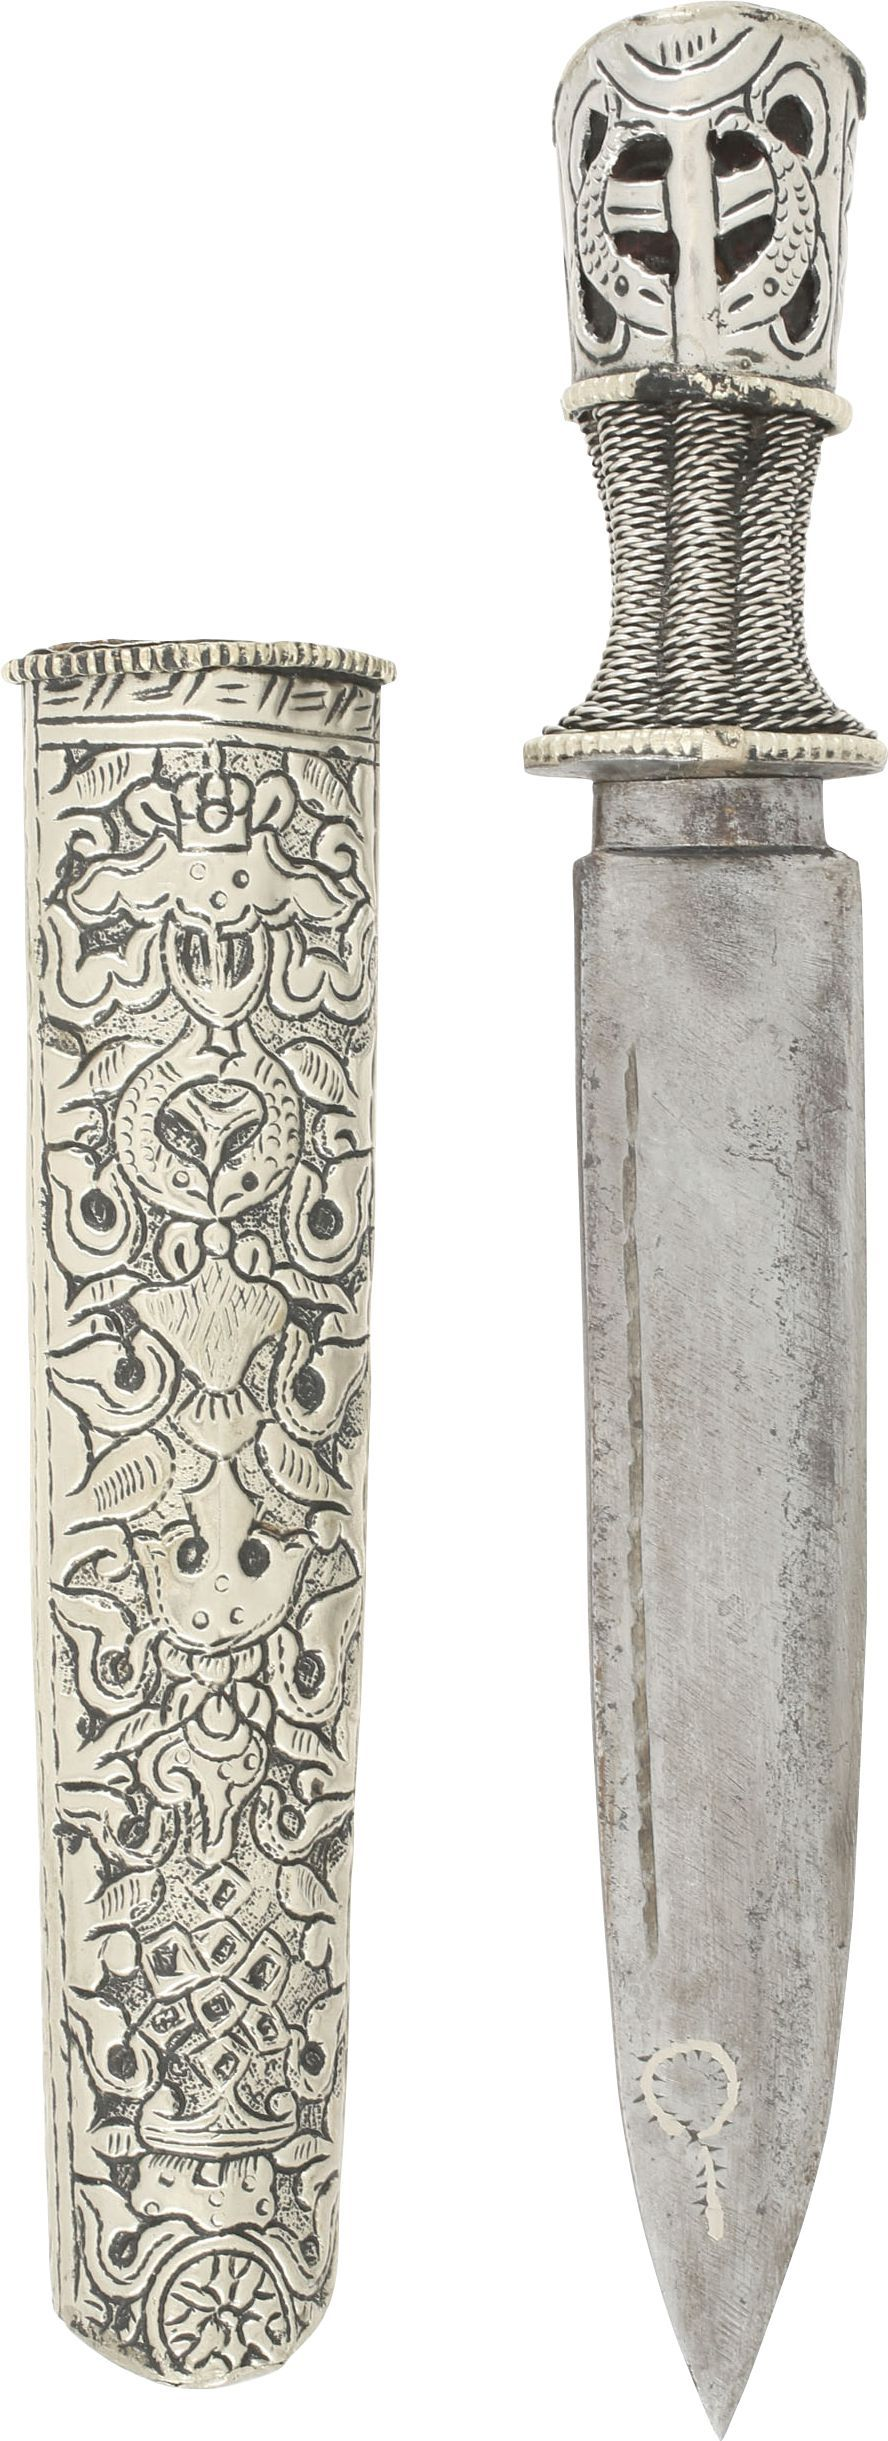 TIBETAN BELT KNIFE C.1800 - Fagan Arms